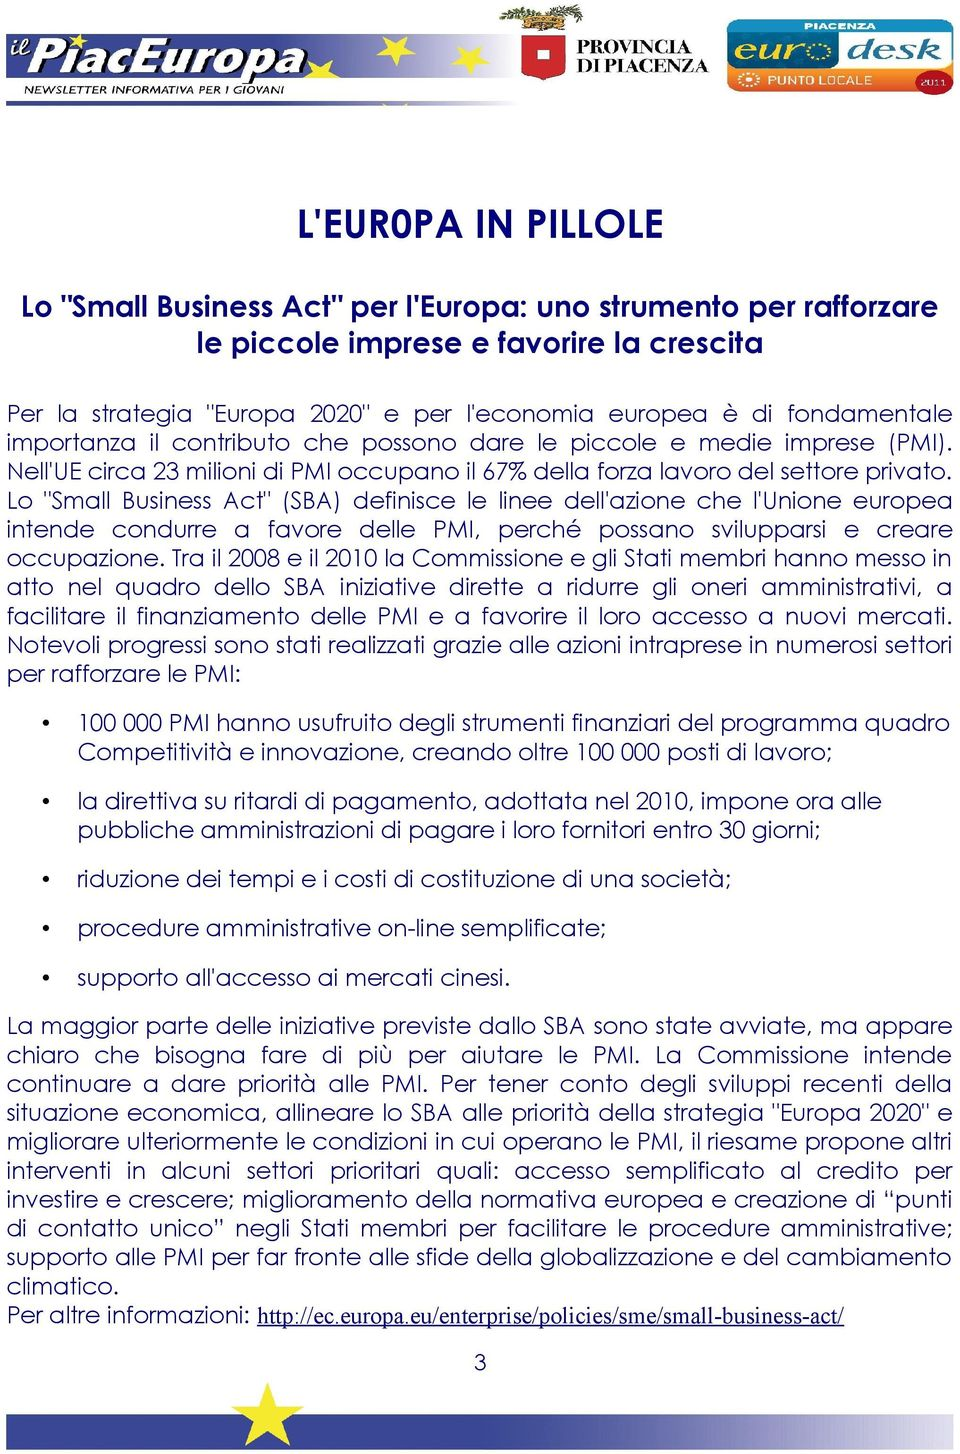 "Lo ""Small Business Act"" (SBA) definisce le linee dell'azione che l'unione europea intende condurre a favore delle PMI, perché possano svilupparsi e creare occupazione."